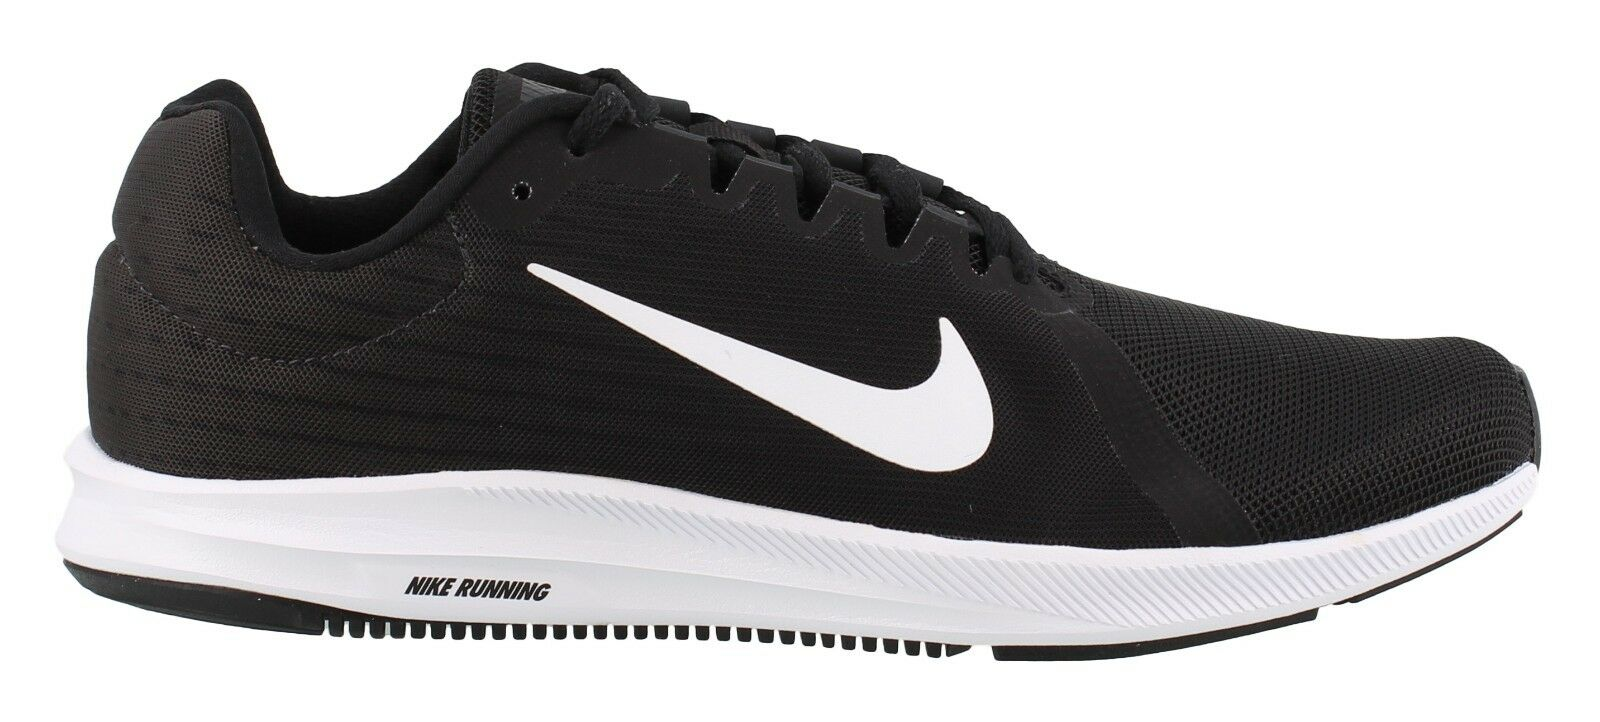 LATEST RELEASE Nike Downshifter 8 Mens Running Shoes Price reduction Price reduction Comfortable and good-looking